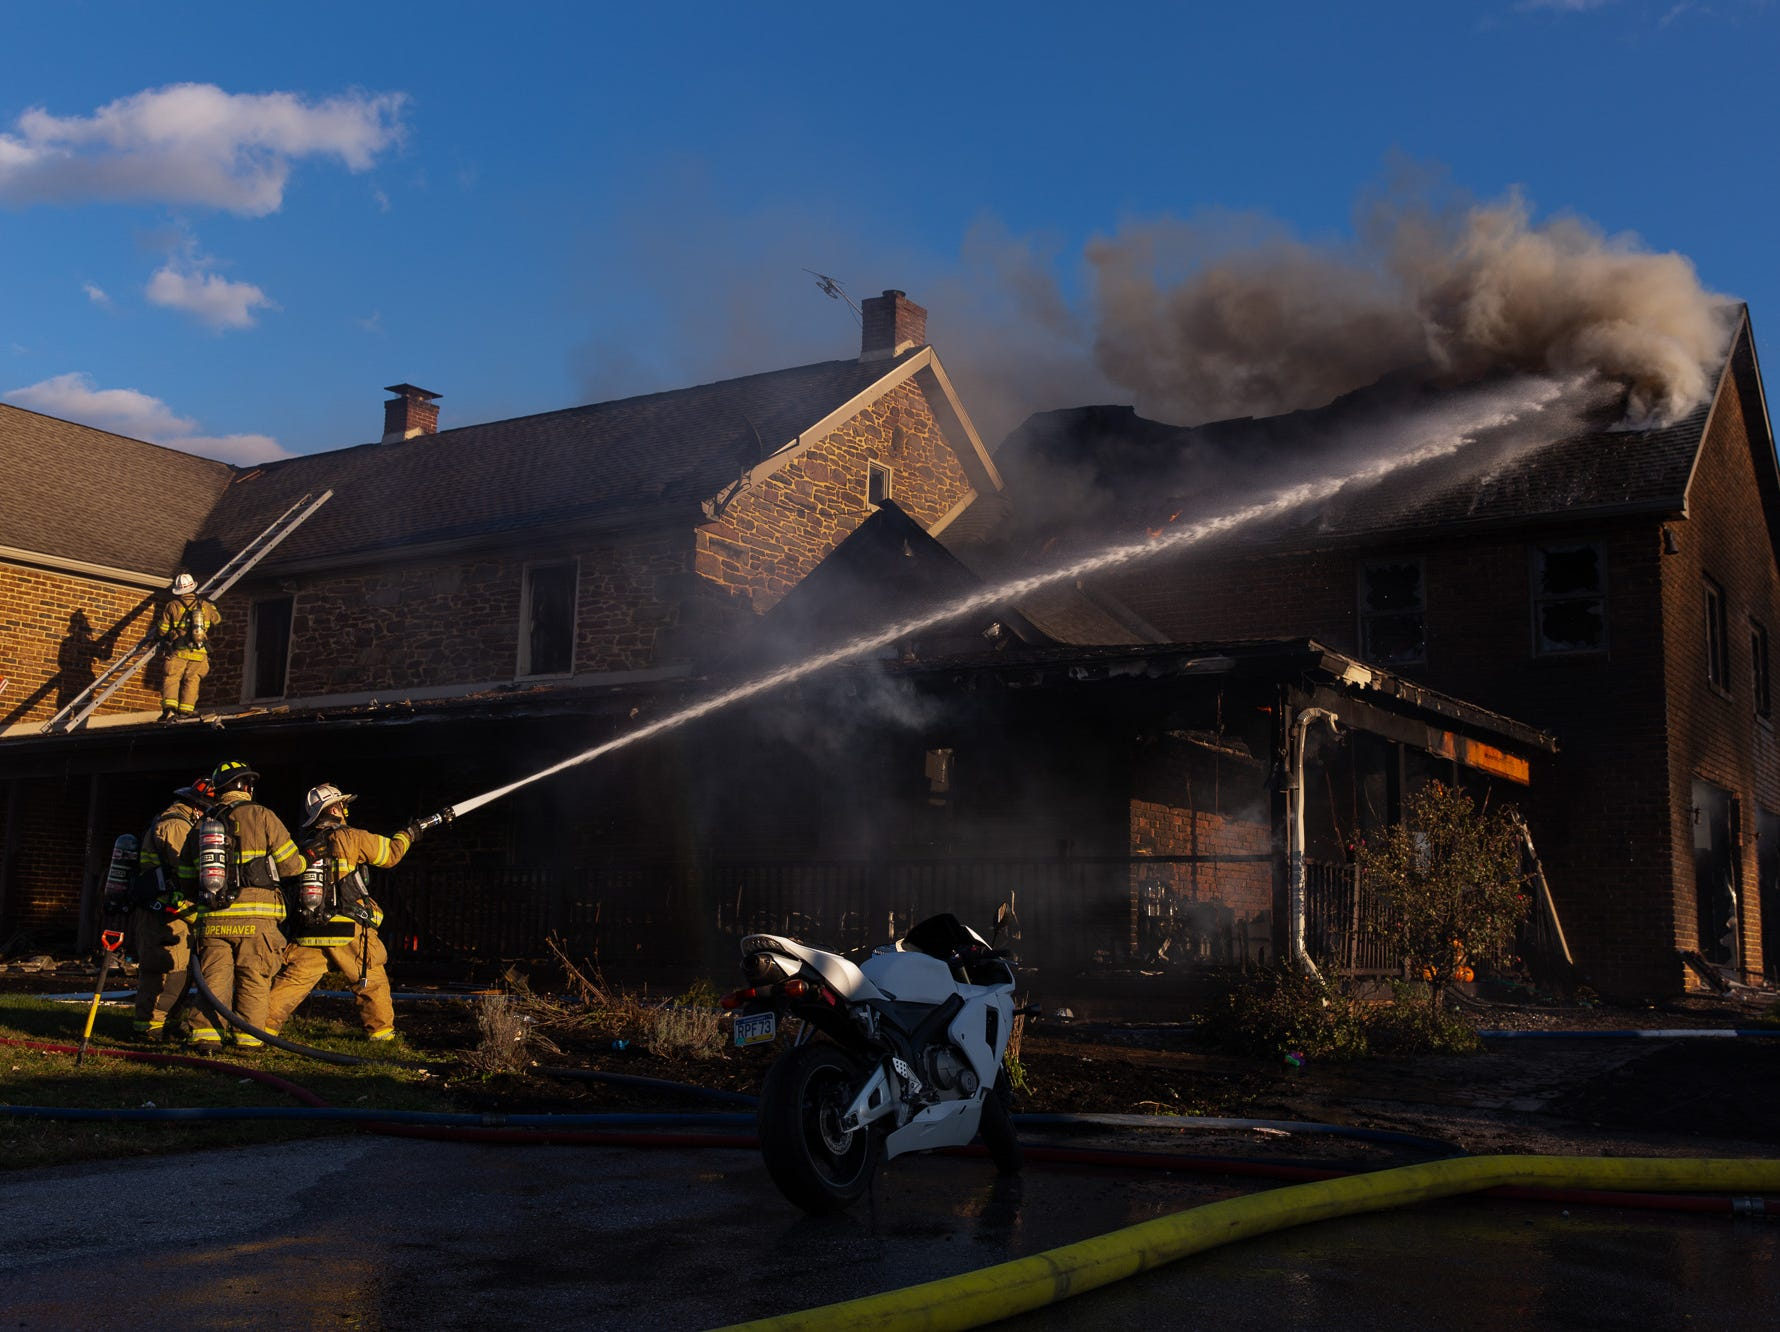 Firefighters work at the scene of a second-alarm heavily engulfed house fire with entrapment on the 800 block of Two Taverns Road, Saturday, Nov. 3, 2018, in Mount Pleasant Township. Firefighters rescued a young child from the second floor of the house while facing heavy wind-driven fire, said United Hook and Ladder Chief Steve Rabine.